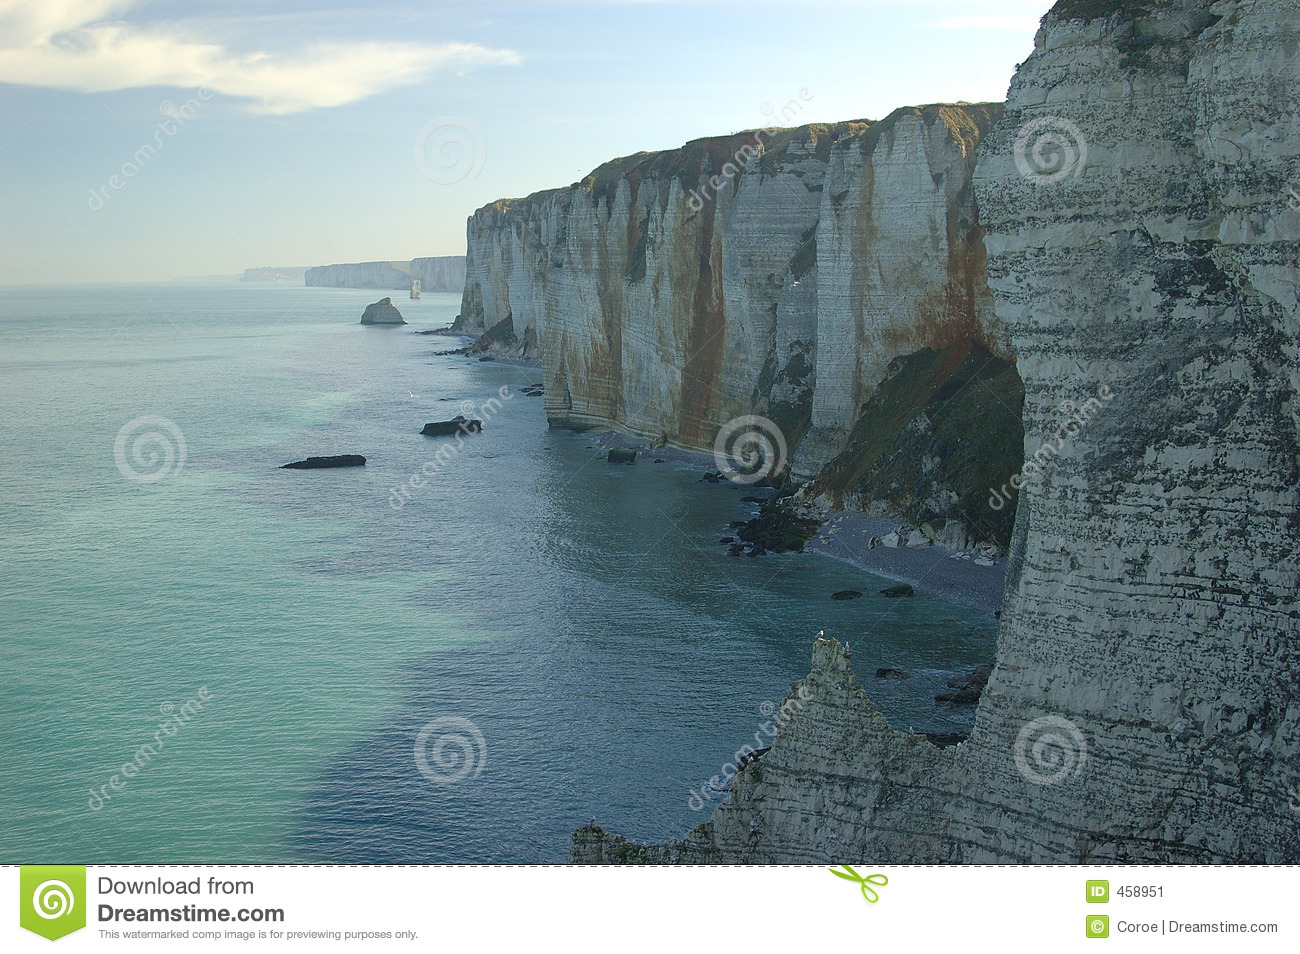 Cliffs in the Normandy